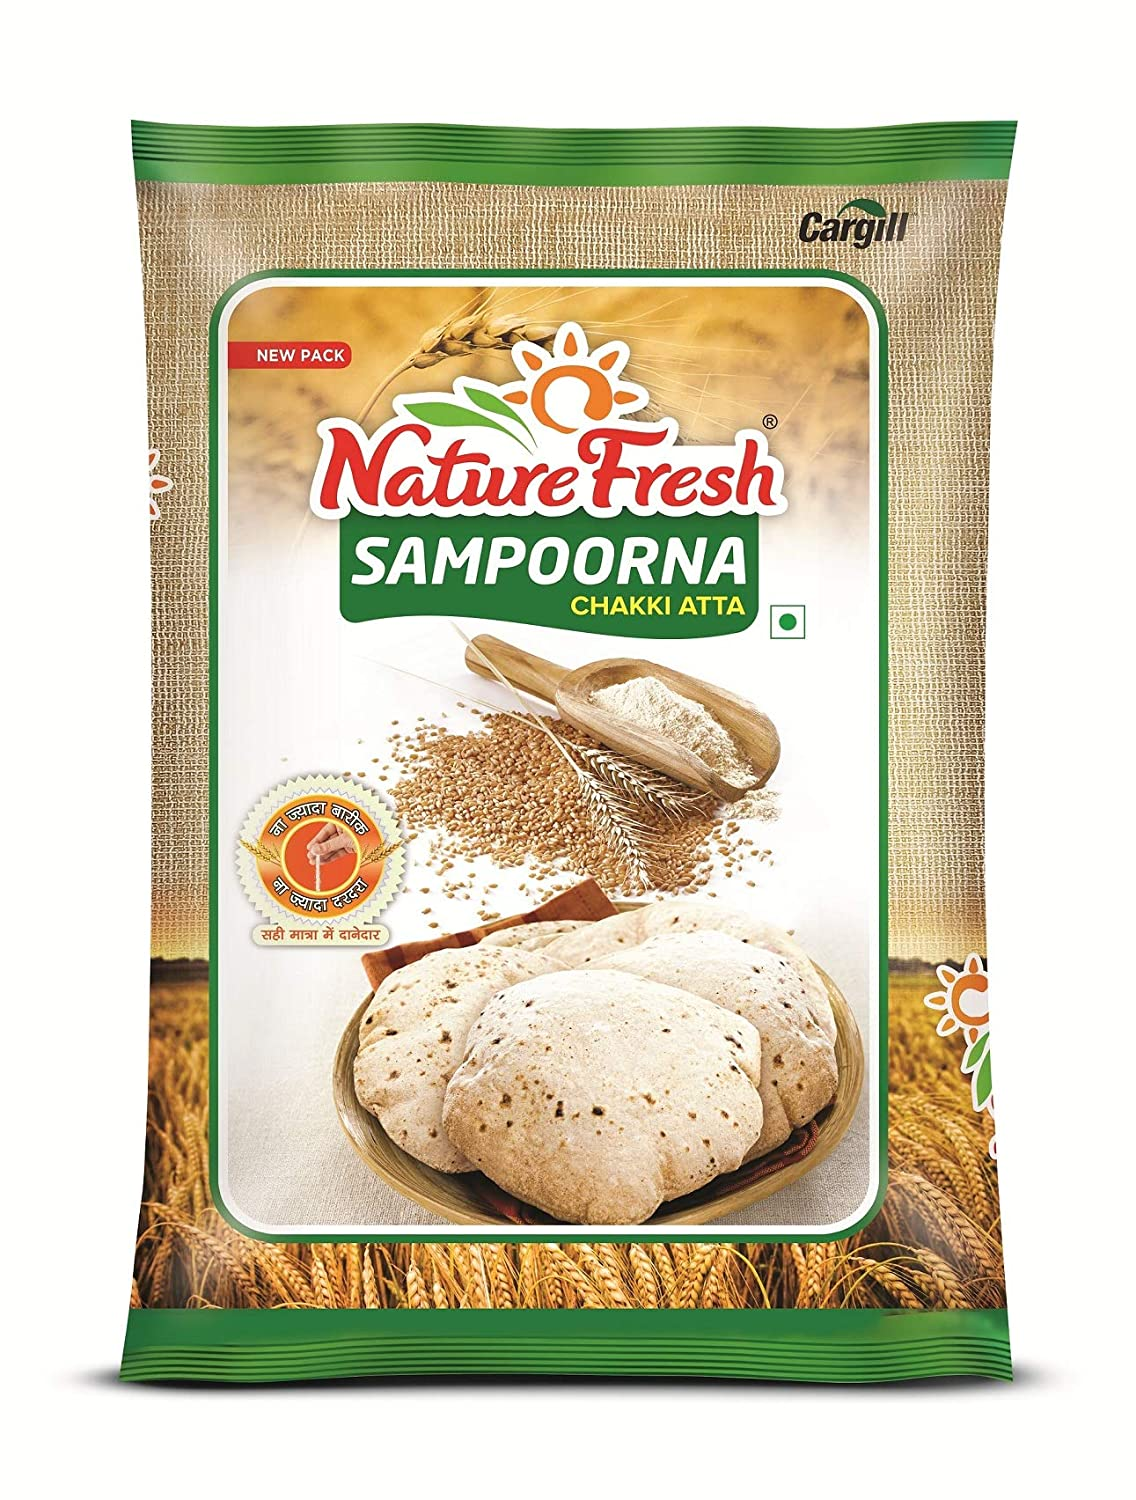 Nature Fresh Sampoorna Chakki Atta, 10kg